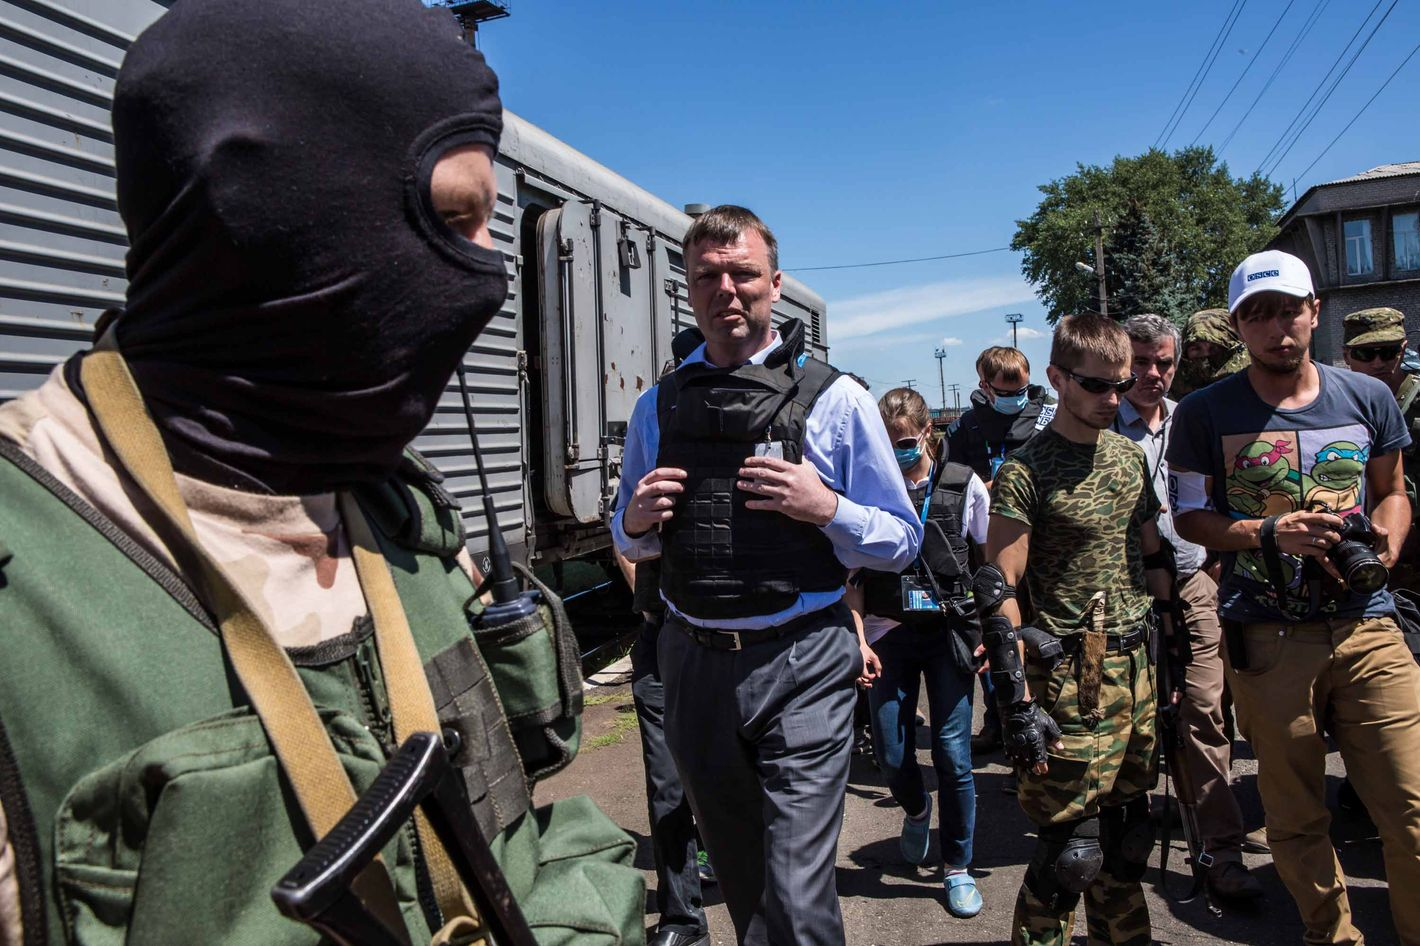 Alexander Hug (C), Deputy Chief Monitor of the Organisation for Security and Cooperation in Europe (OSCE) Special Monitoring Mission to Ukraine, visits a train containing the bodies of victims of the Malaysia Airlines flight MH17 crash on July 21, 2014 in Torez, Ukraine. Together with Dutch inspectors, the storage conditions were declared acceptable, though it is still unclear where or when the train will be moved. Malaysia Airlines flight MH17 was travelling from Amsterdam to Kuala Lumpur when it crashed killing all 298 on board including 80 children.